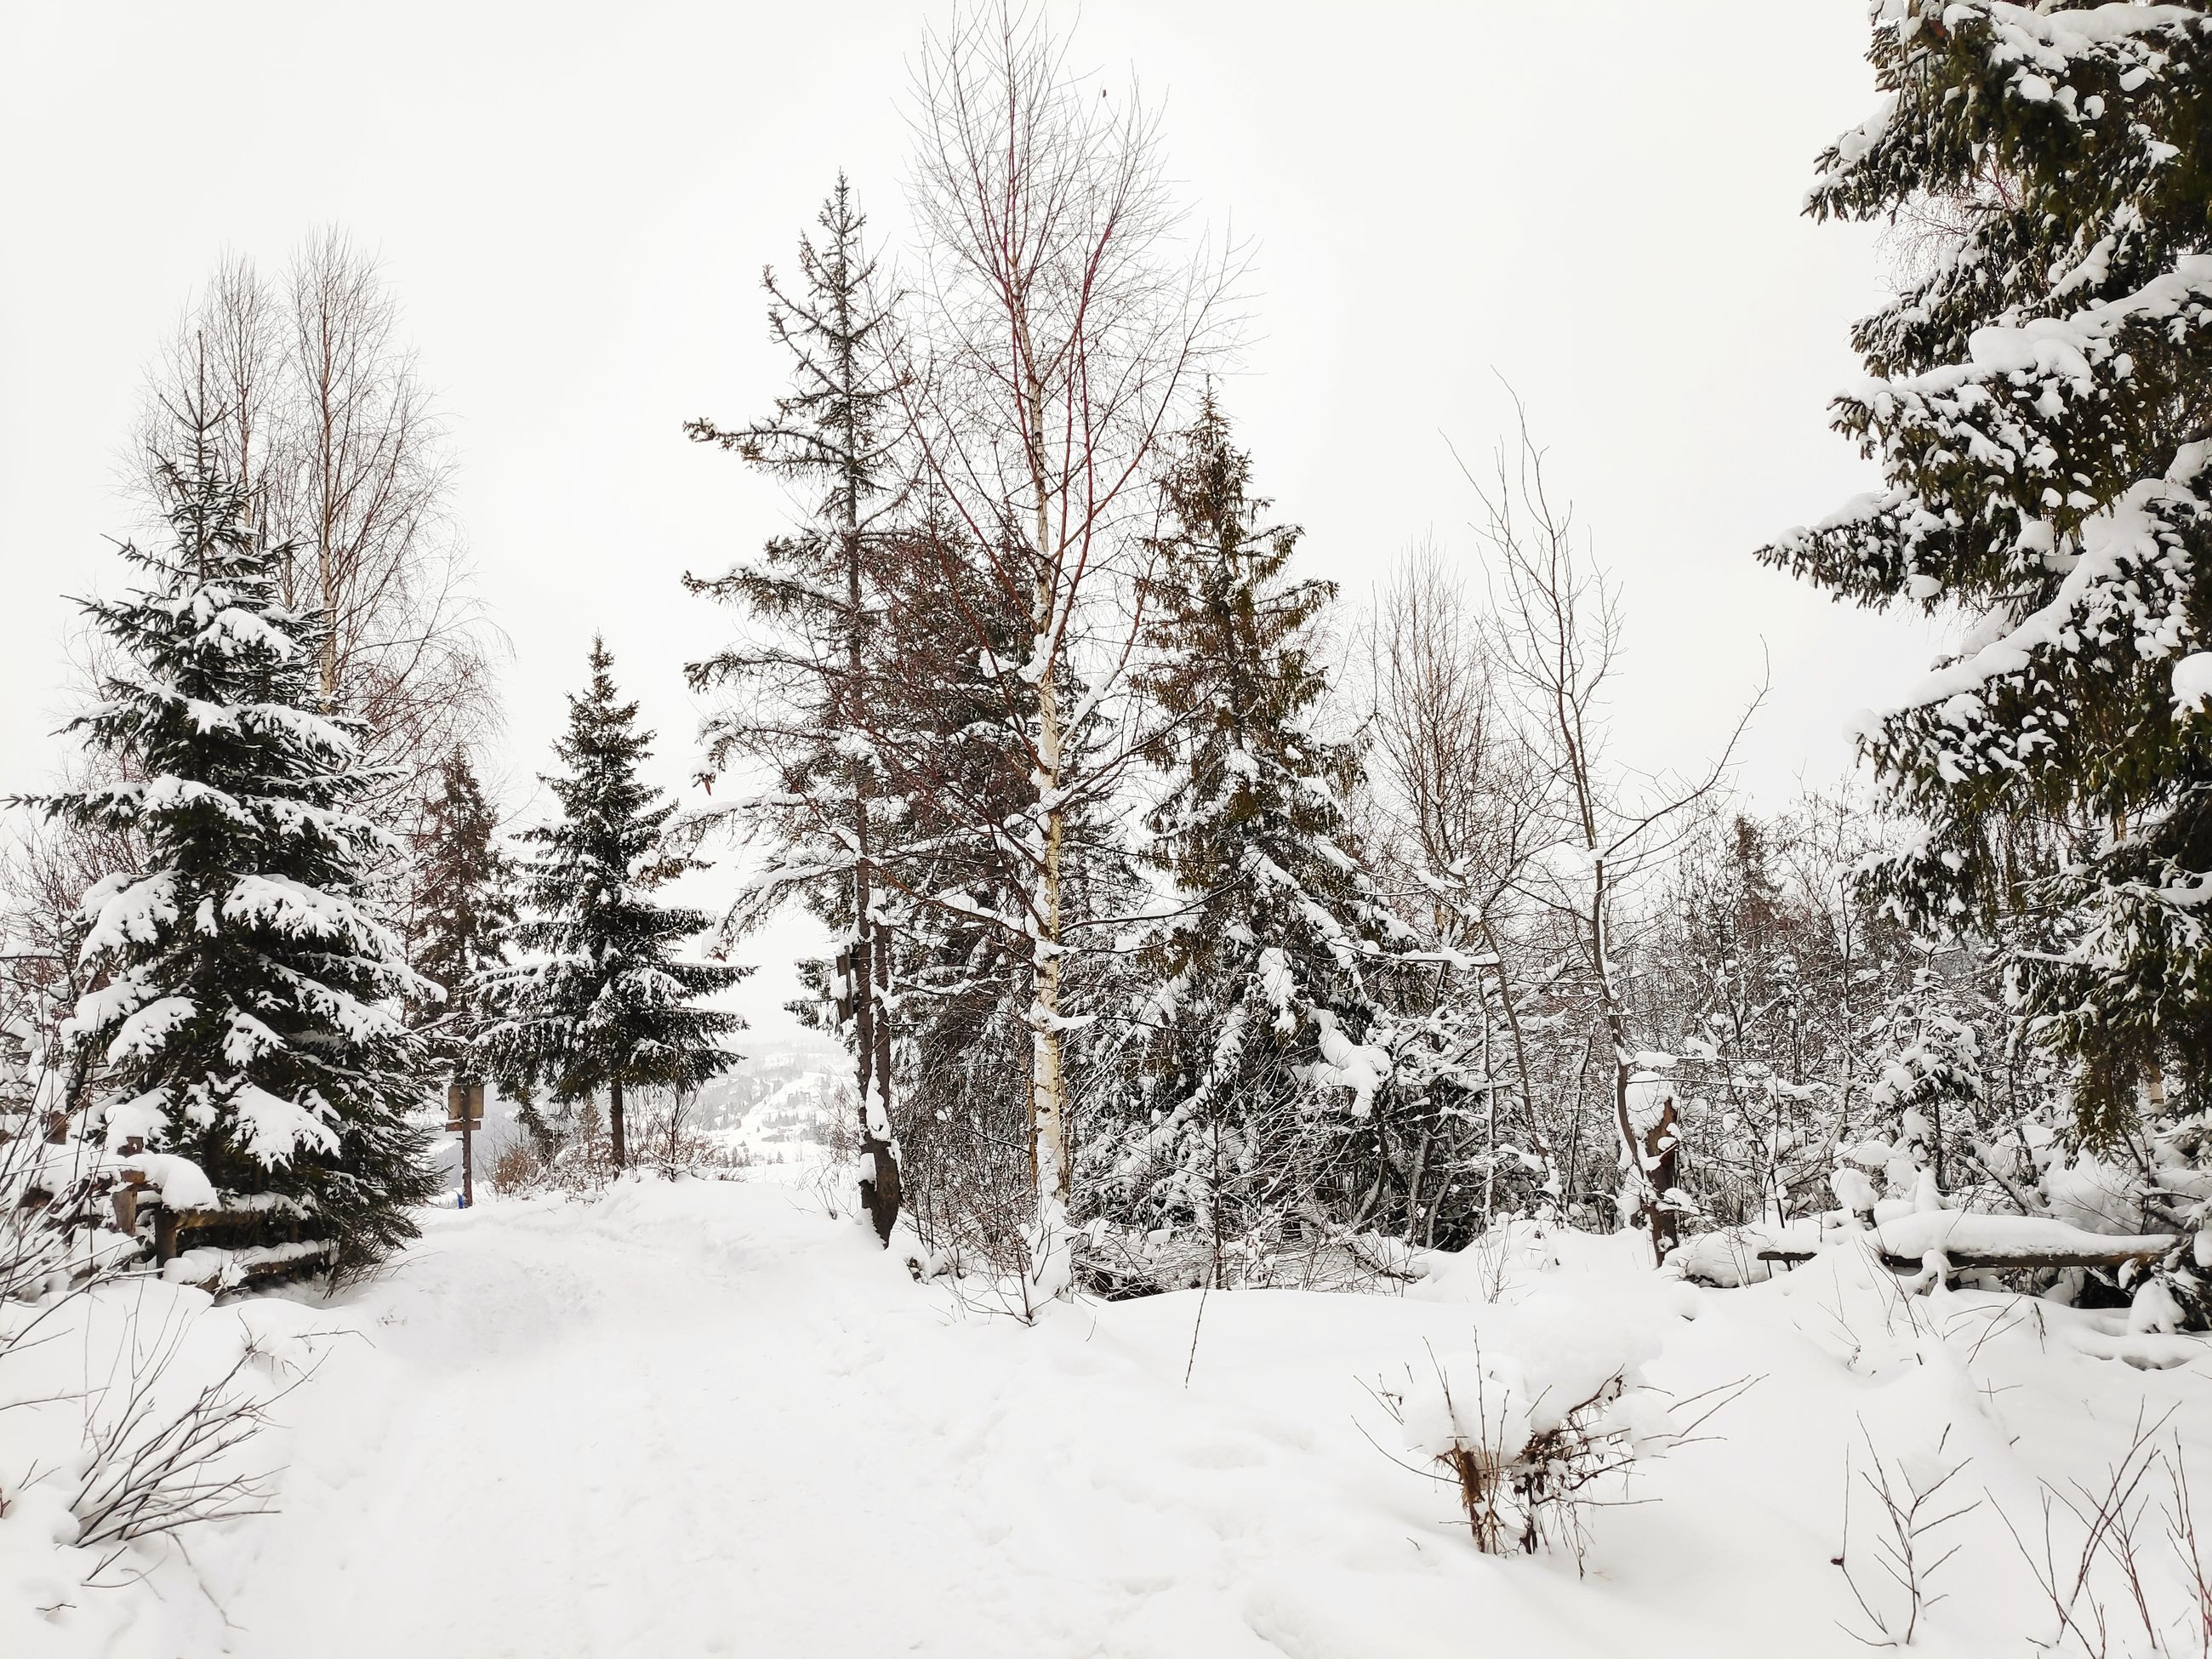 snow, winter, cold temperature, tree, plant, beauty in nature, tranquility, land, sky, nature, covering, tranquil scene, scenics - nature, white color, no people, field, day, non-urban scene, growth, snowing